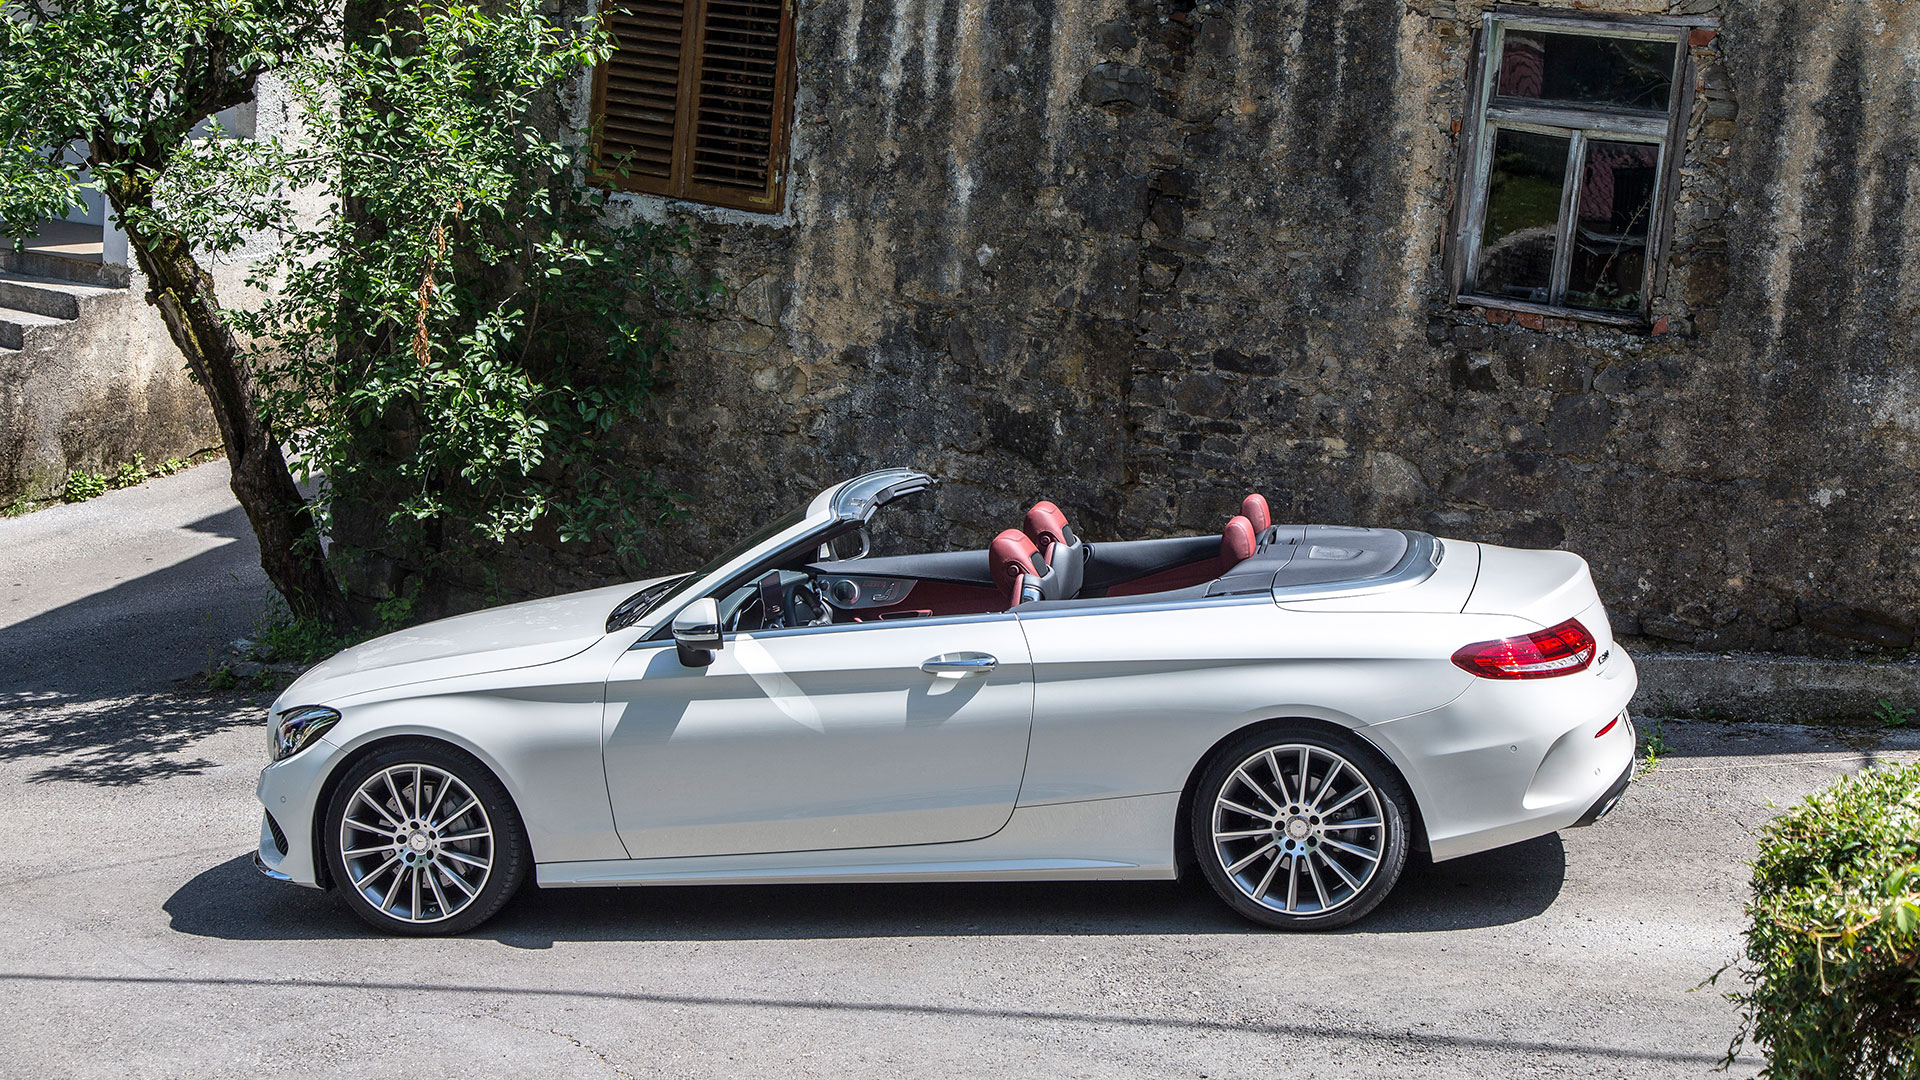 mercedes c300 cabriolet and mercedes amg c63 s cabriolet first drive the drive. Black Bedroom Furniture Sets. Home Design Ideas